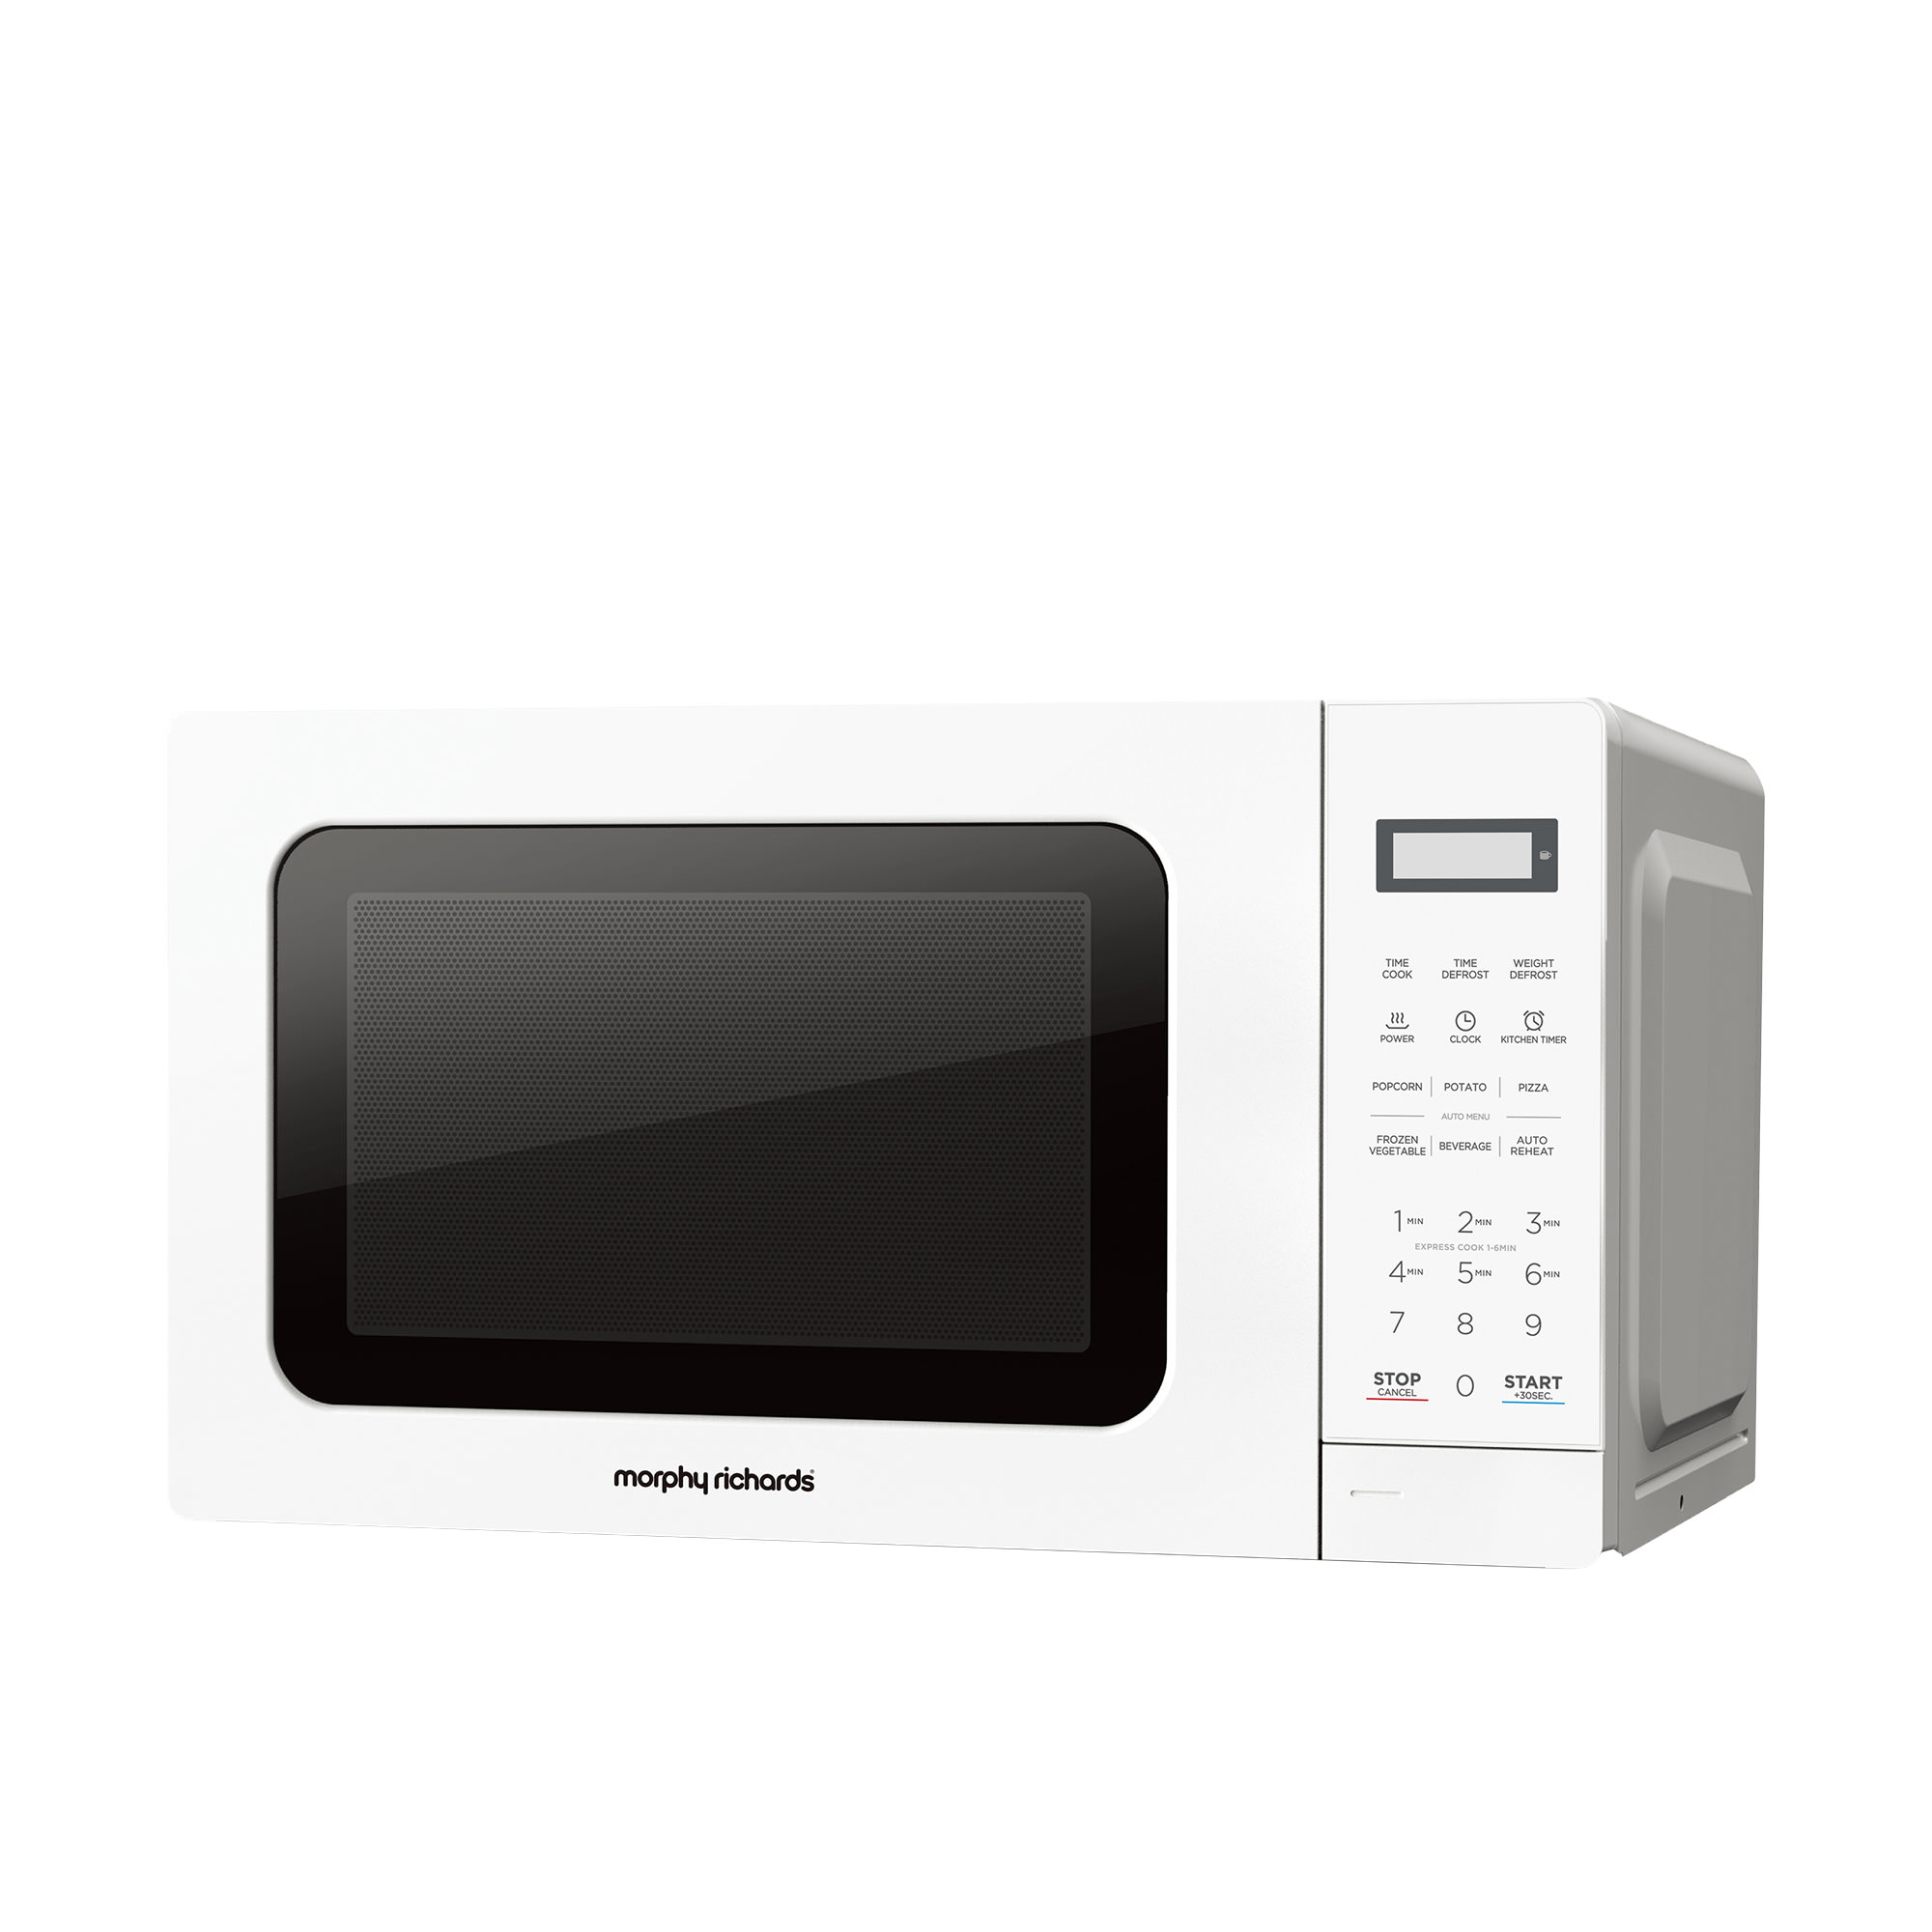 Morphy Richards Microwave Oven 20L image #2